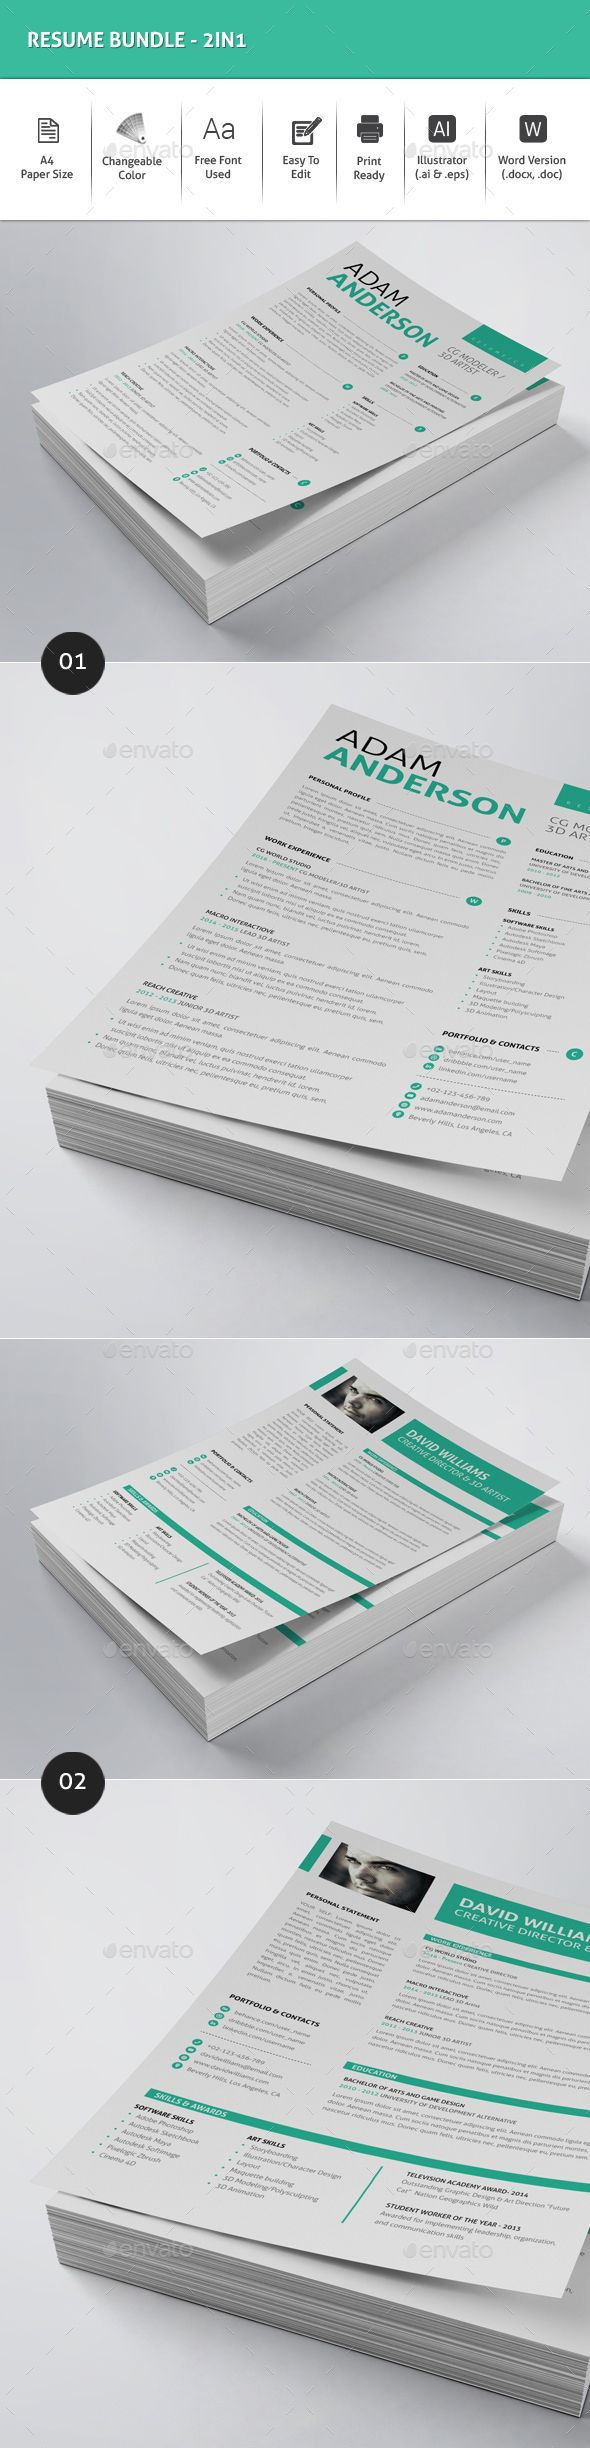 32 best Resume Templates images on Pinterest | Resume templates ...